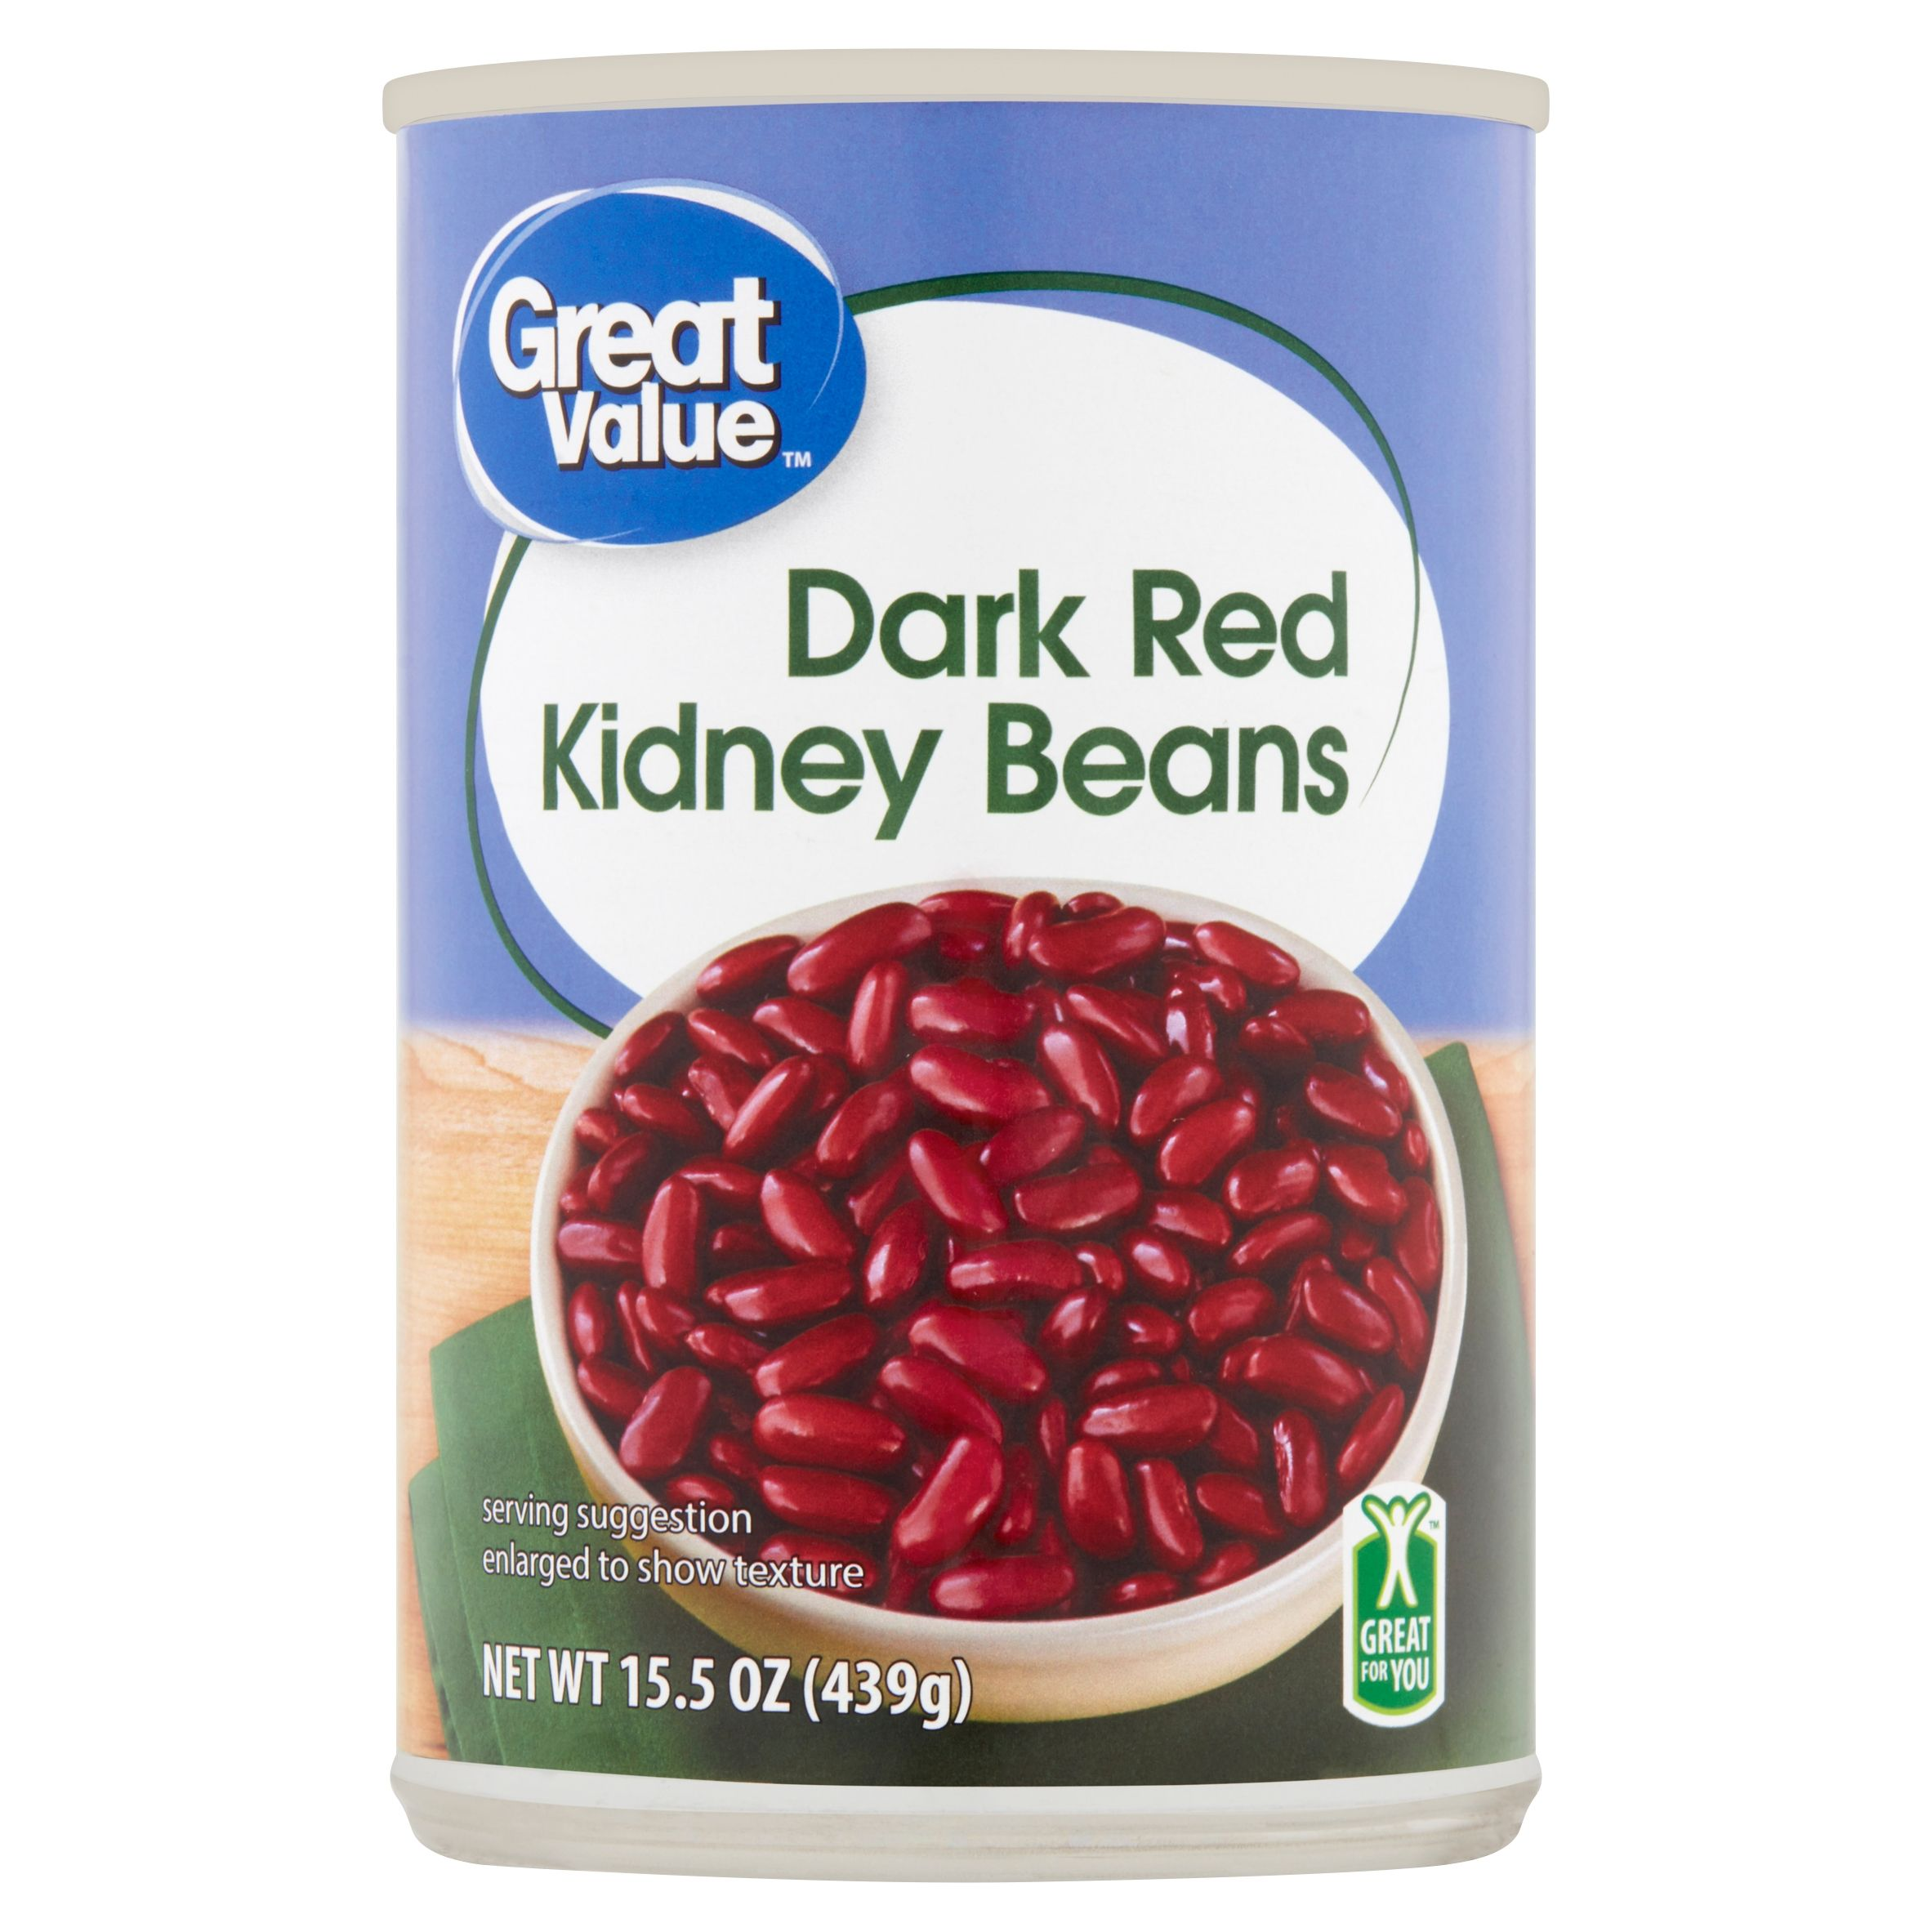 Great Value Dark Red Kidney Beans 15 5 Oz Ad Red Sponsored Dark Great Kidney Beans Red Kidney Bean